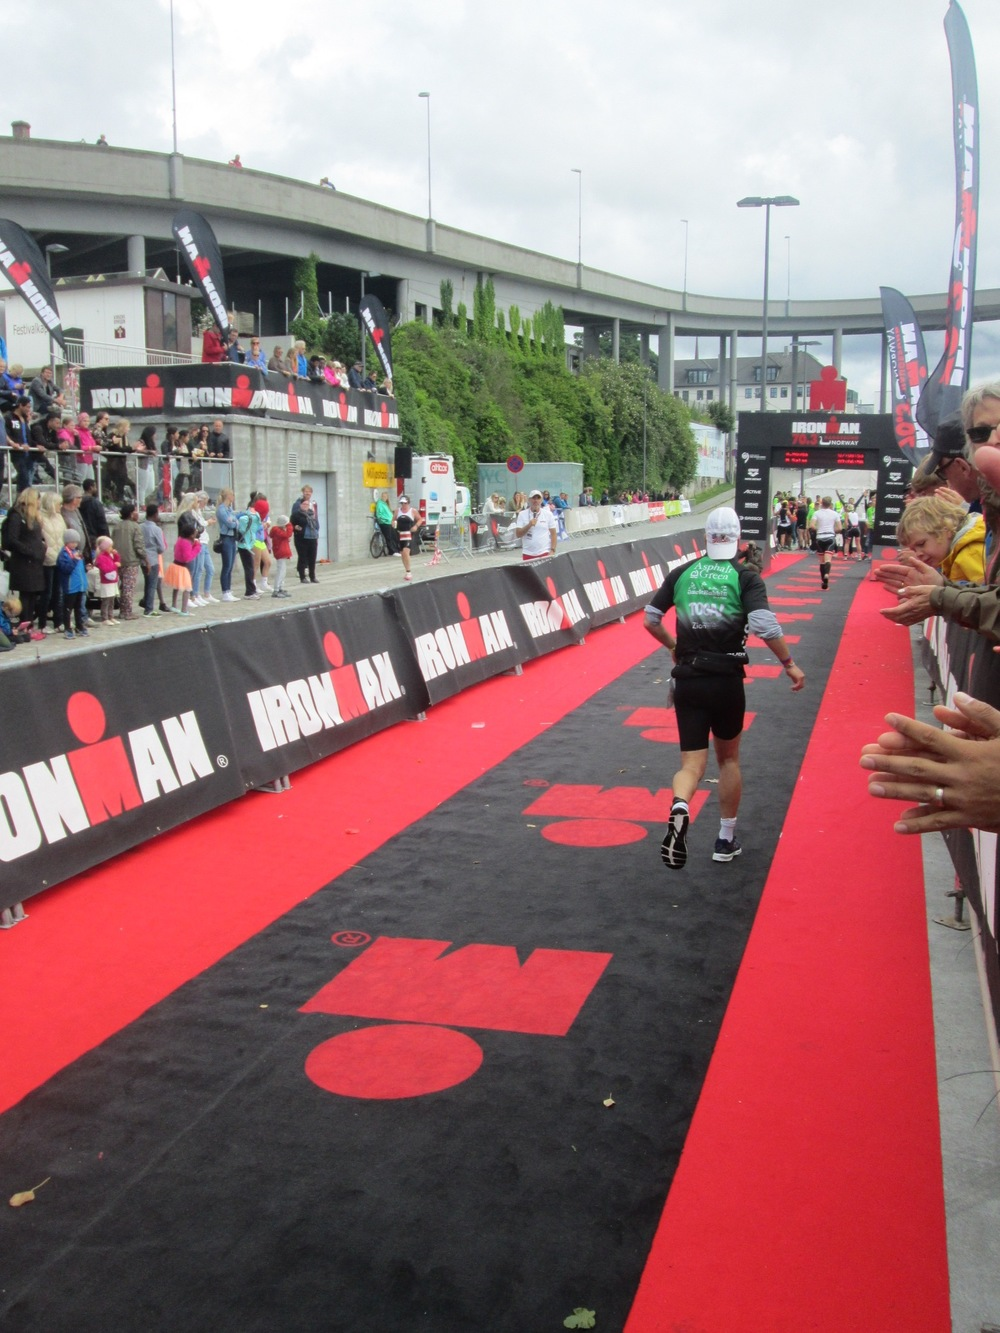 Crossing the finish line!